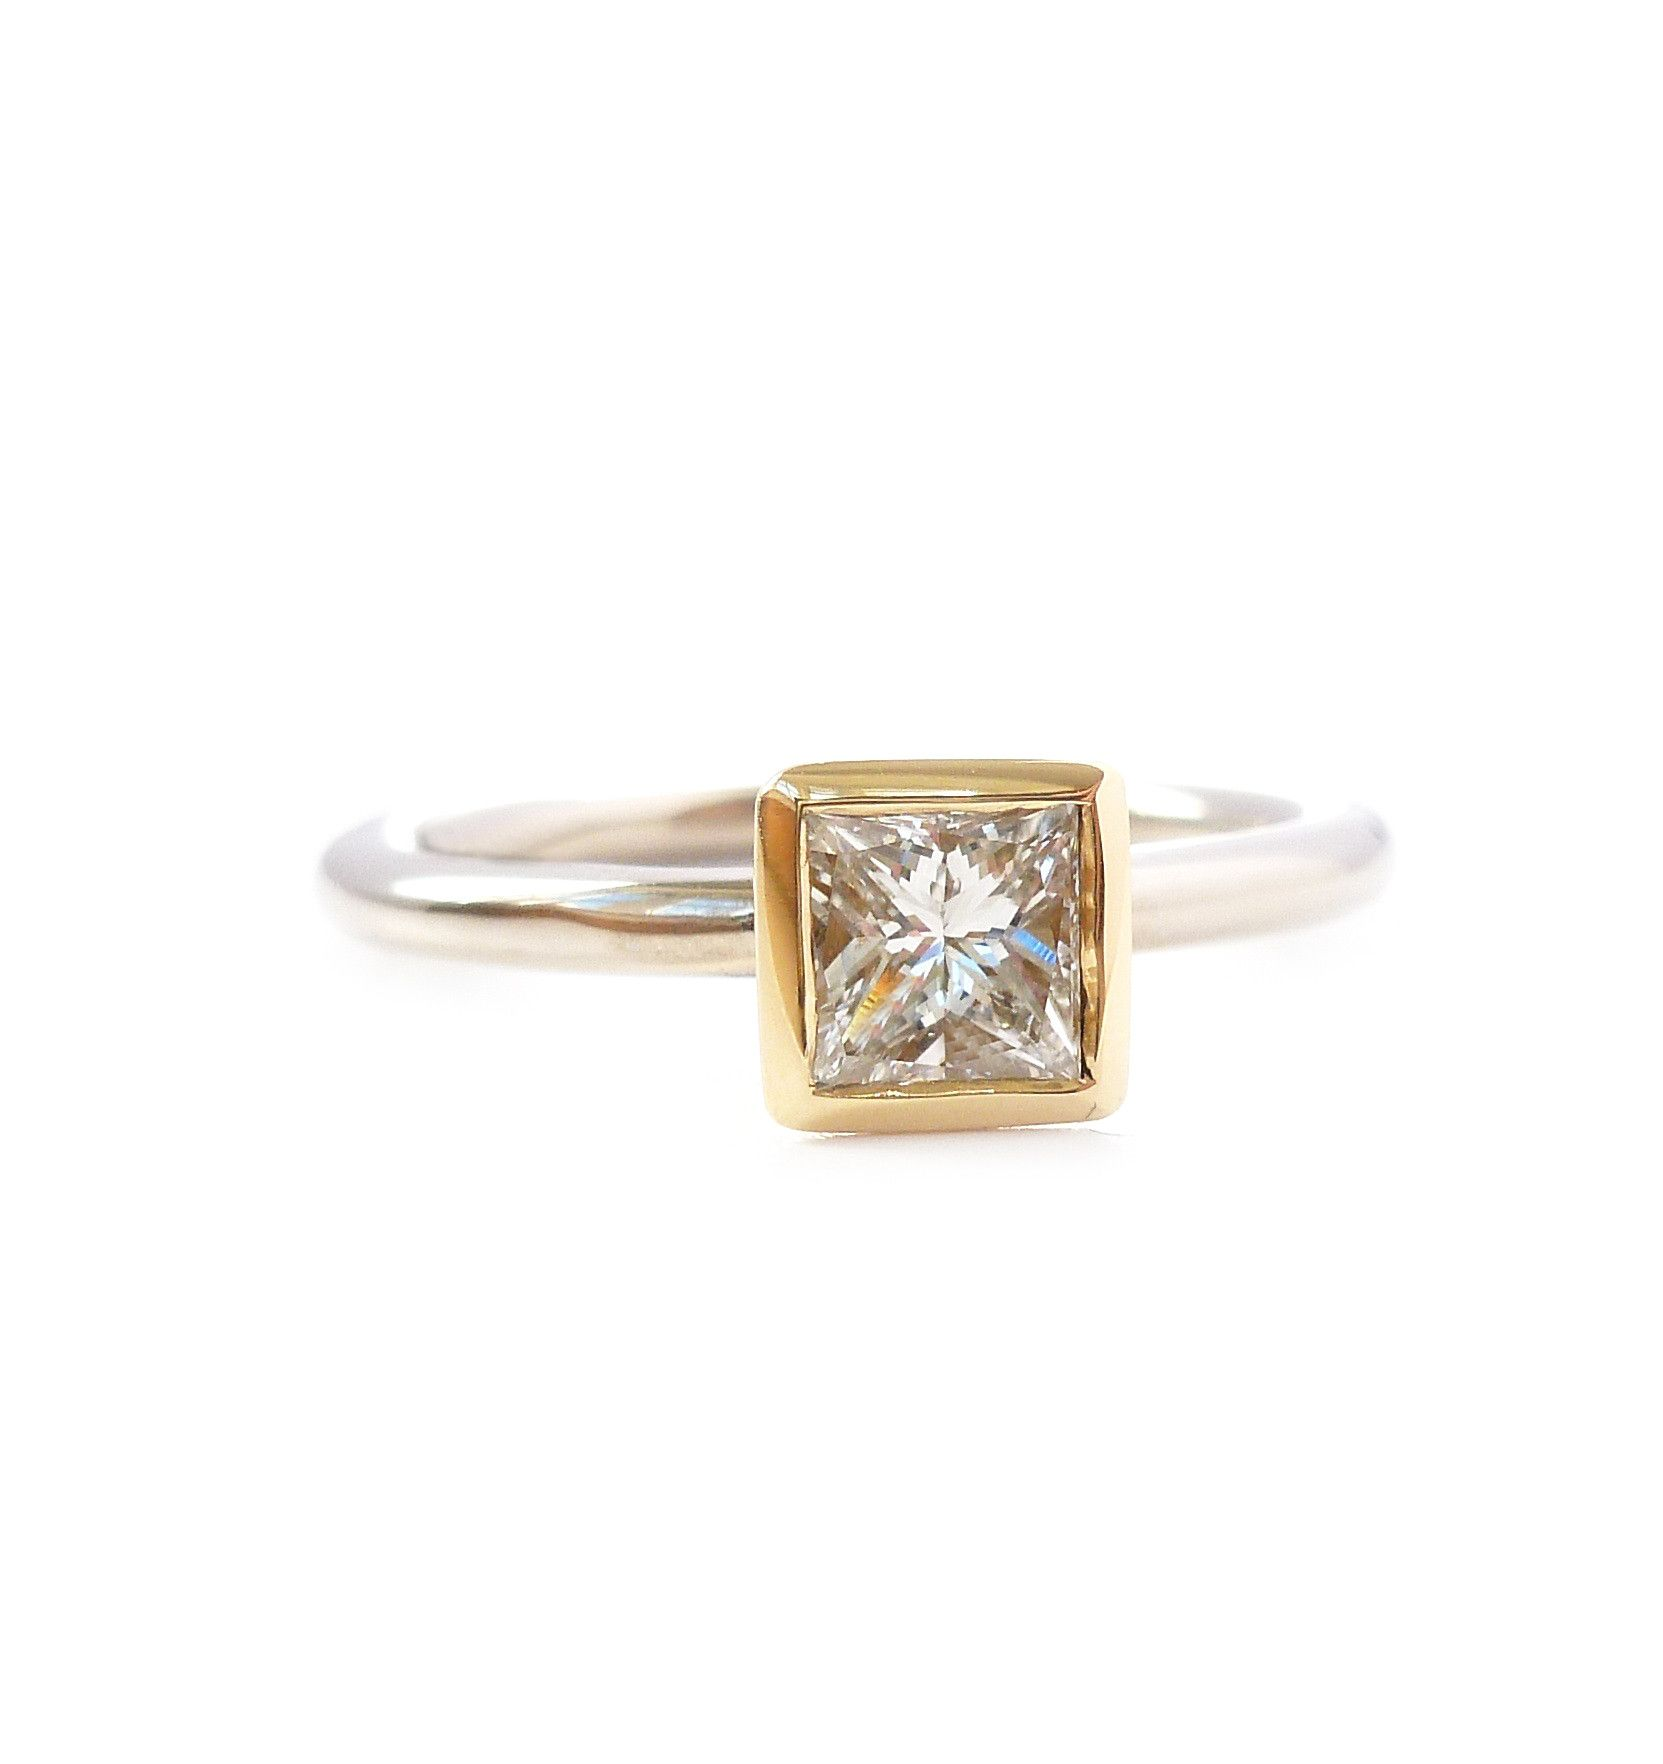 794ed15bd Contemporary, bespoke and modern 18k yellow gold square princess diamond  engagement ring, commitment ring, matt brushed finish. Handmade by Sue Lane  in ...